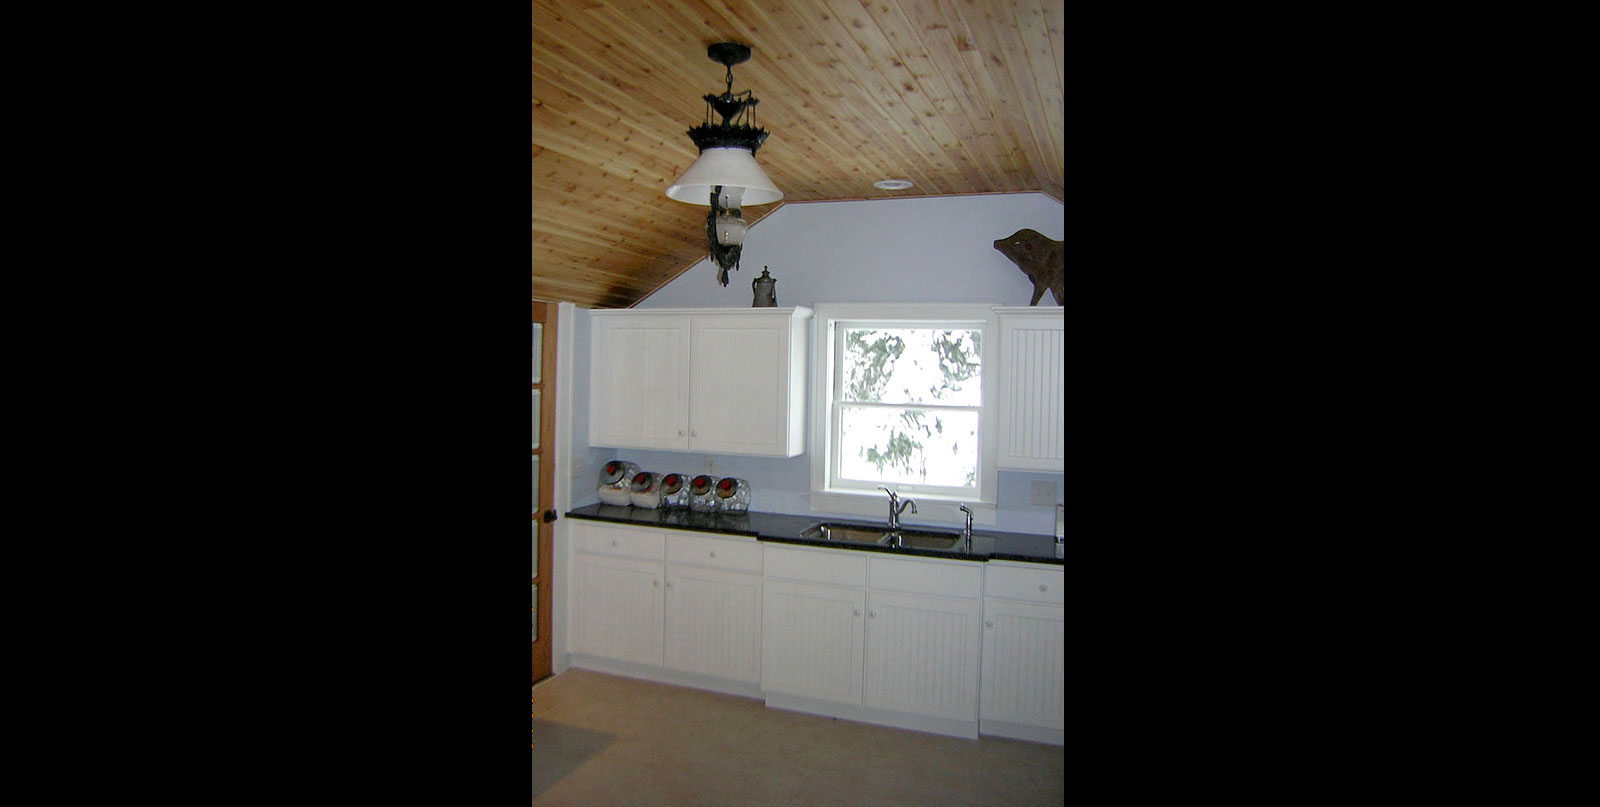 Covenant Construction Group - Cottage Kitchen Remodel, Finished, Ceiling and Light Fixture - Dexter, MI